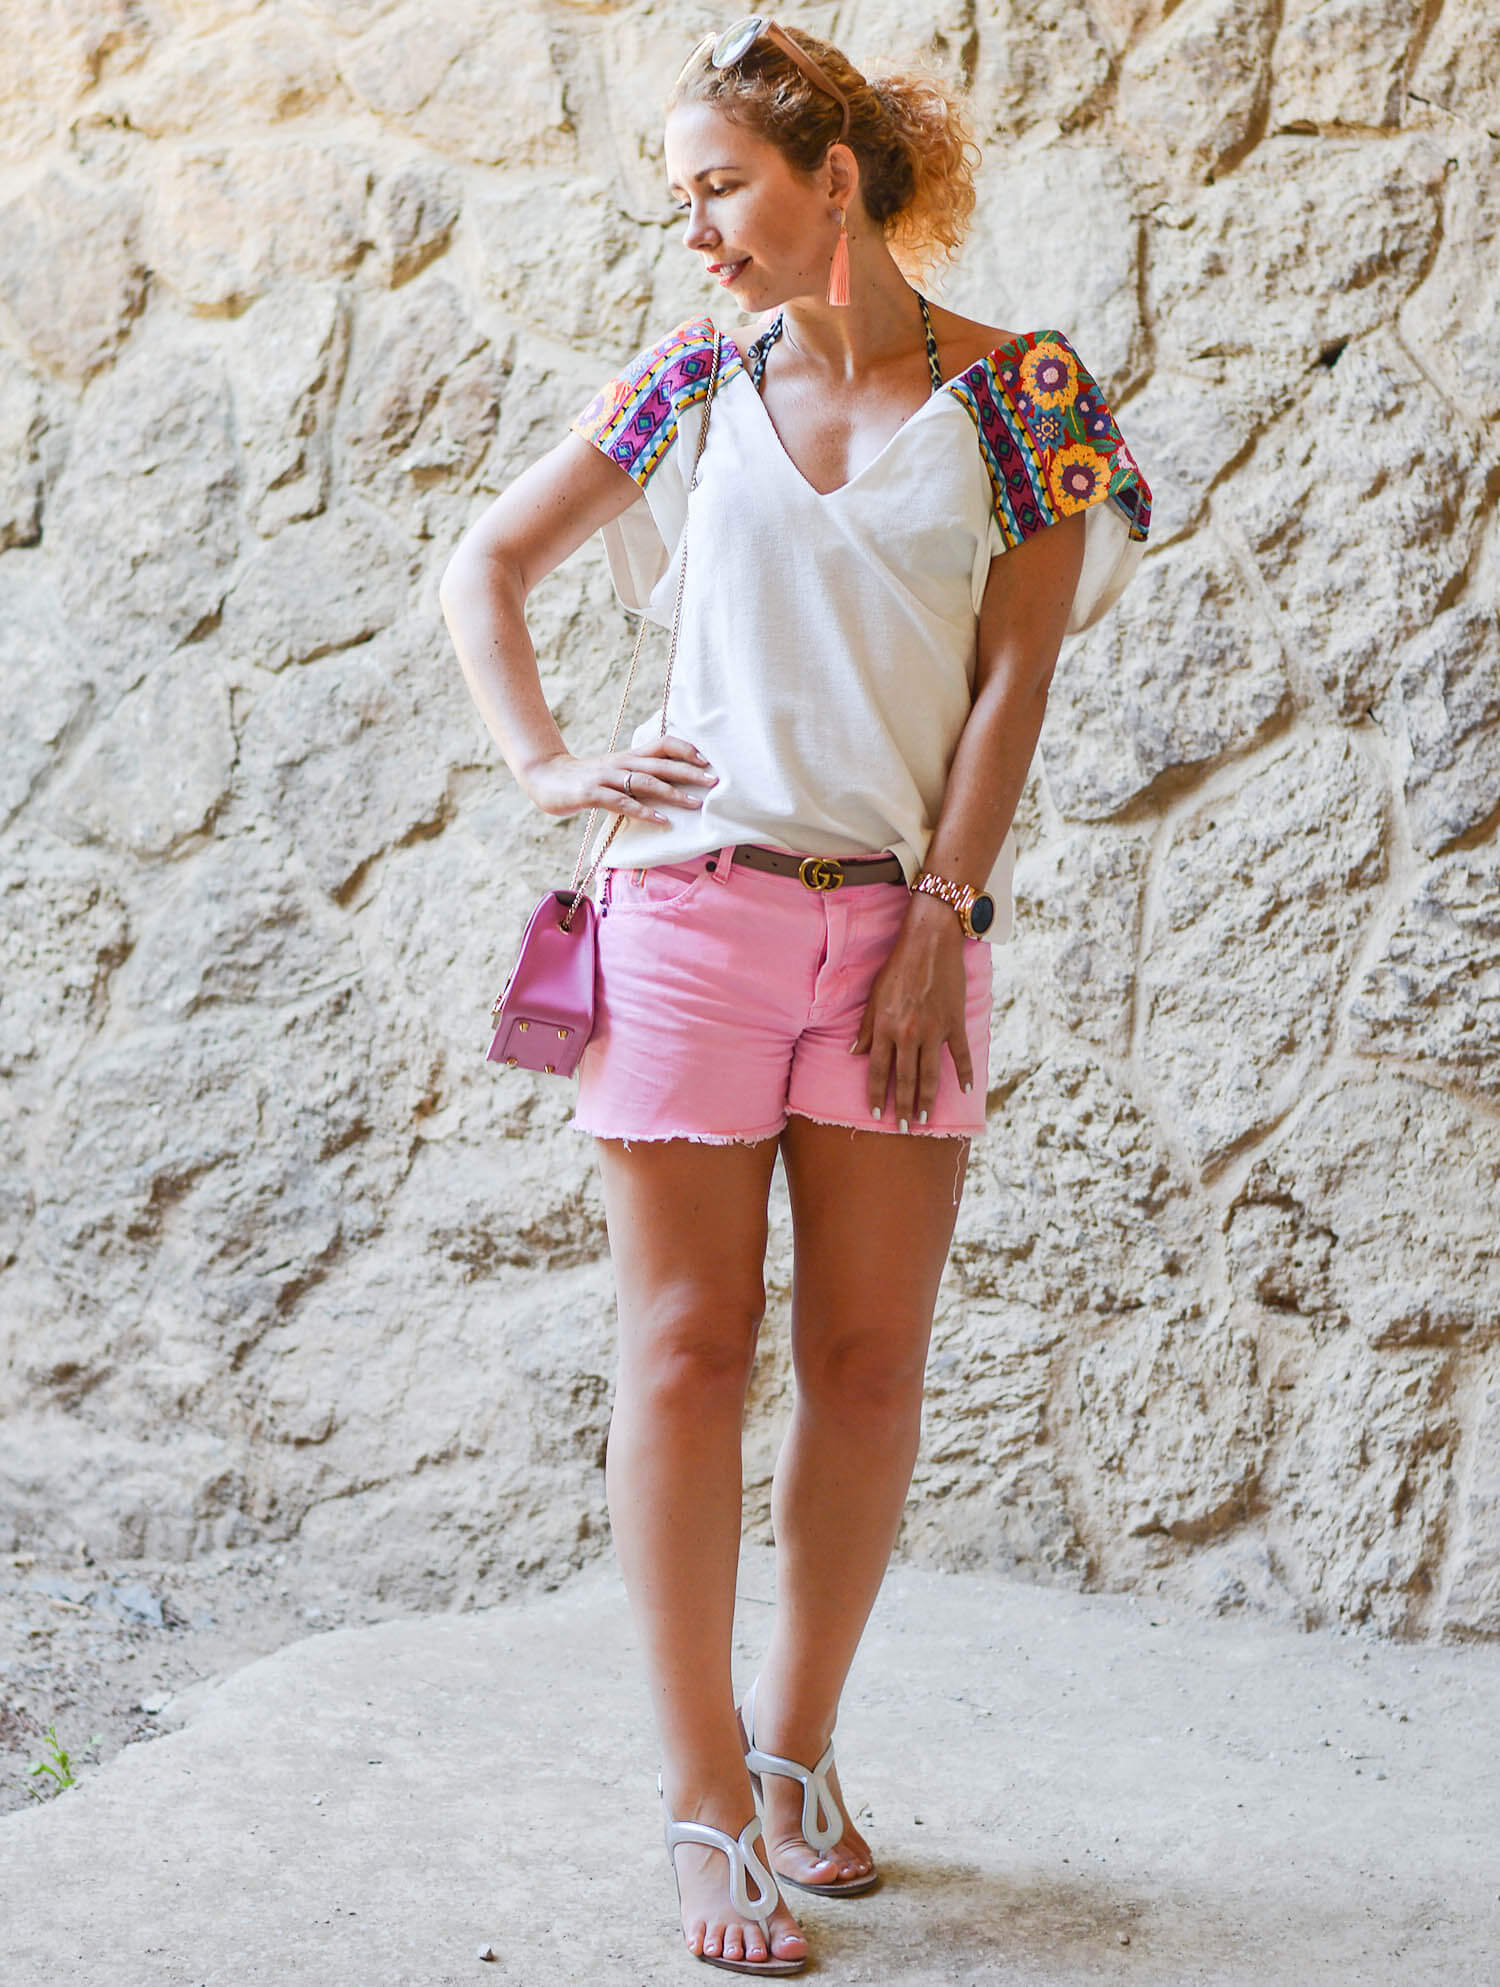 Holiday-Outfit-Parc-Güell-Barcelona-with-Boho-Vibes-and-neonpink-Hotpants-Kationette-Fashionblogger-Travelblogger-Honeymoon-2018